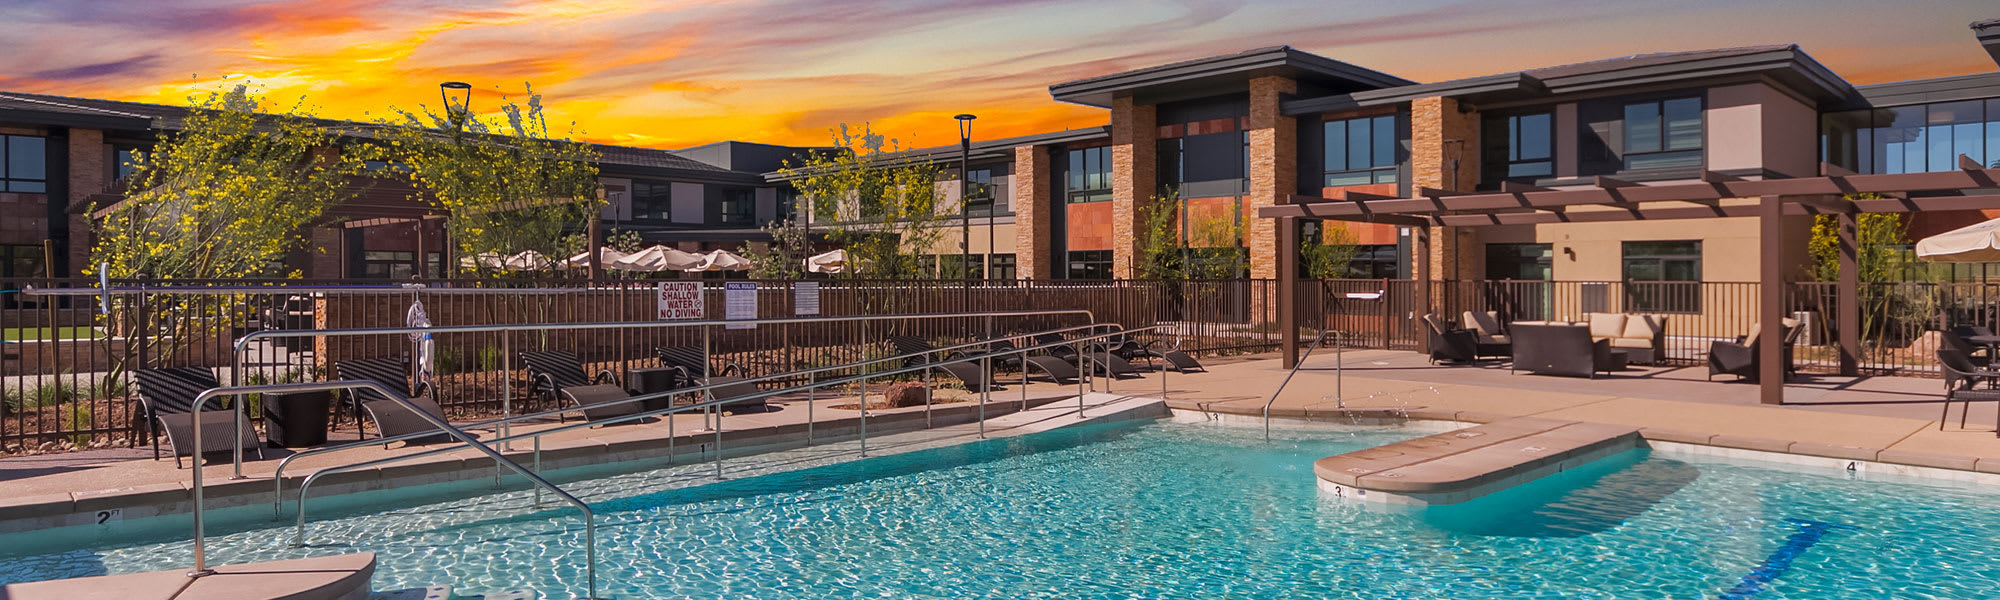 Outdoor pool at senior living in Seattle